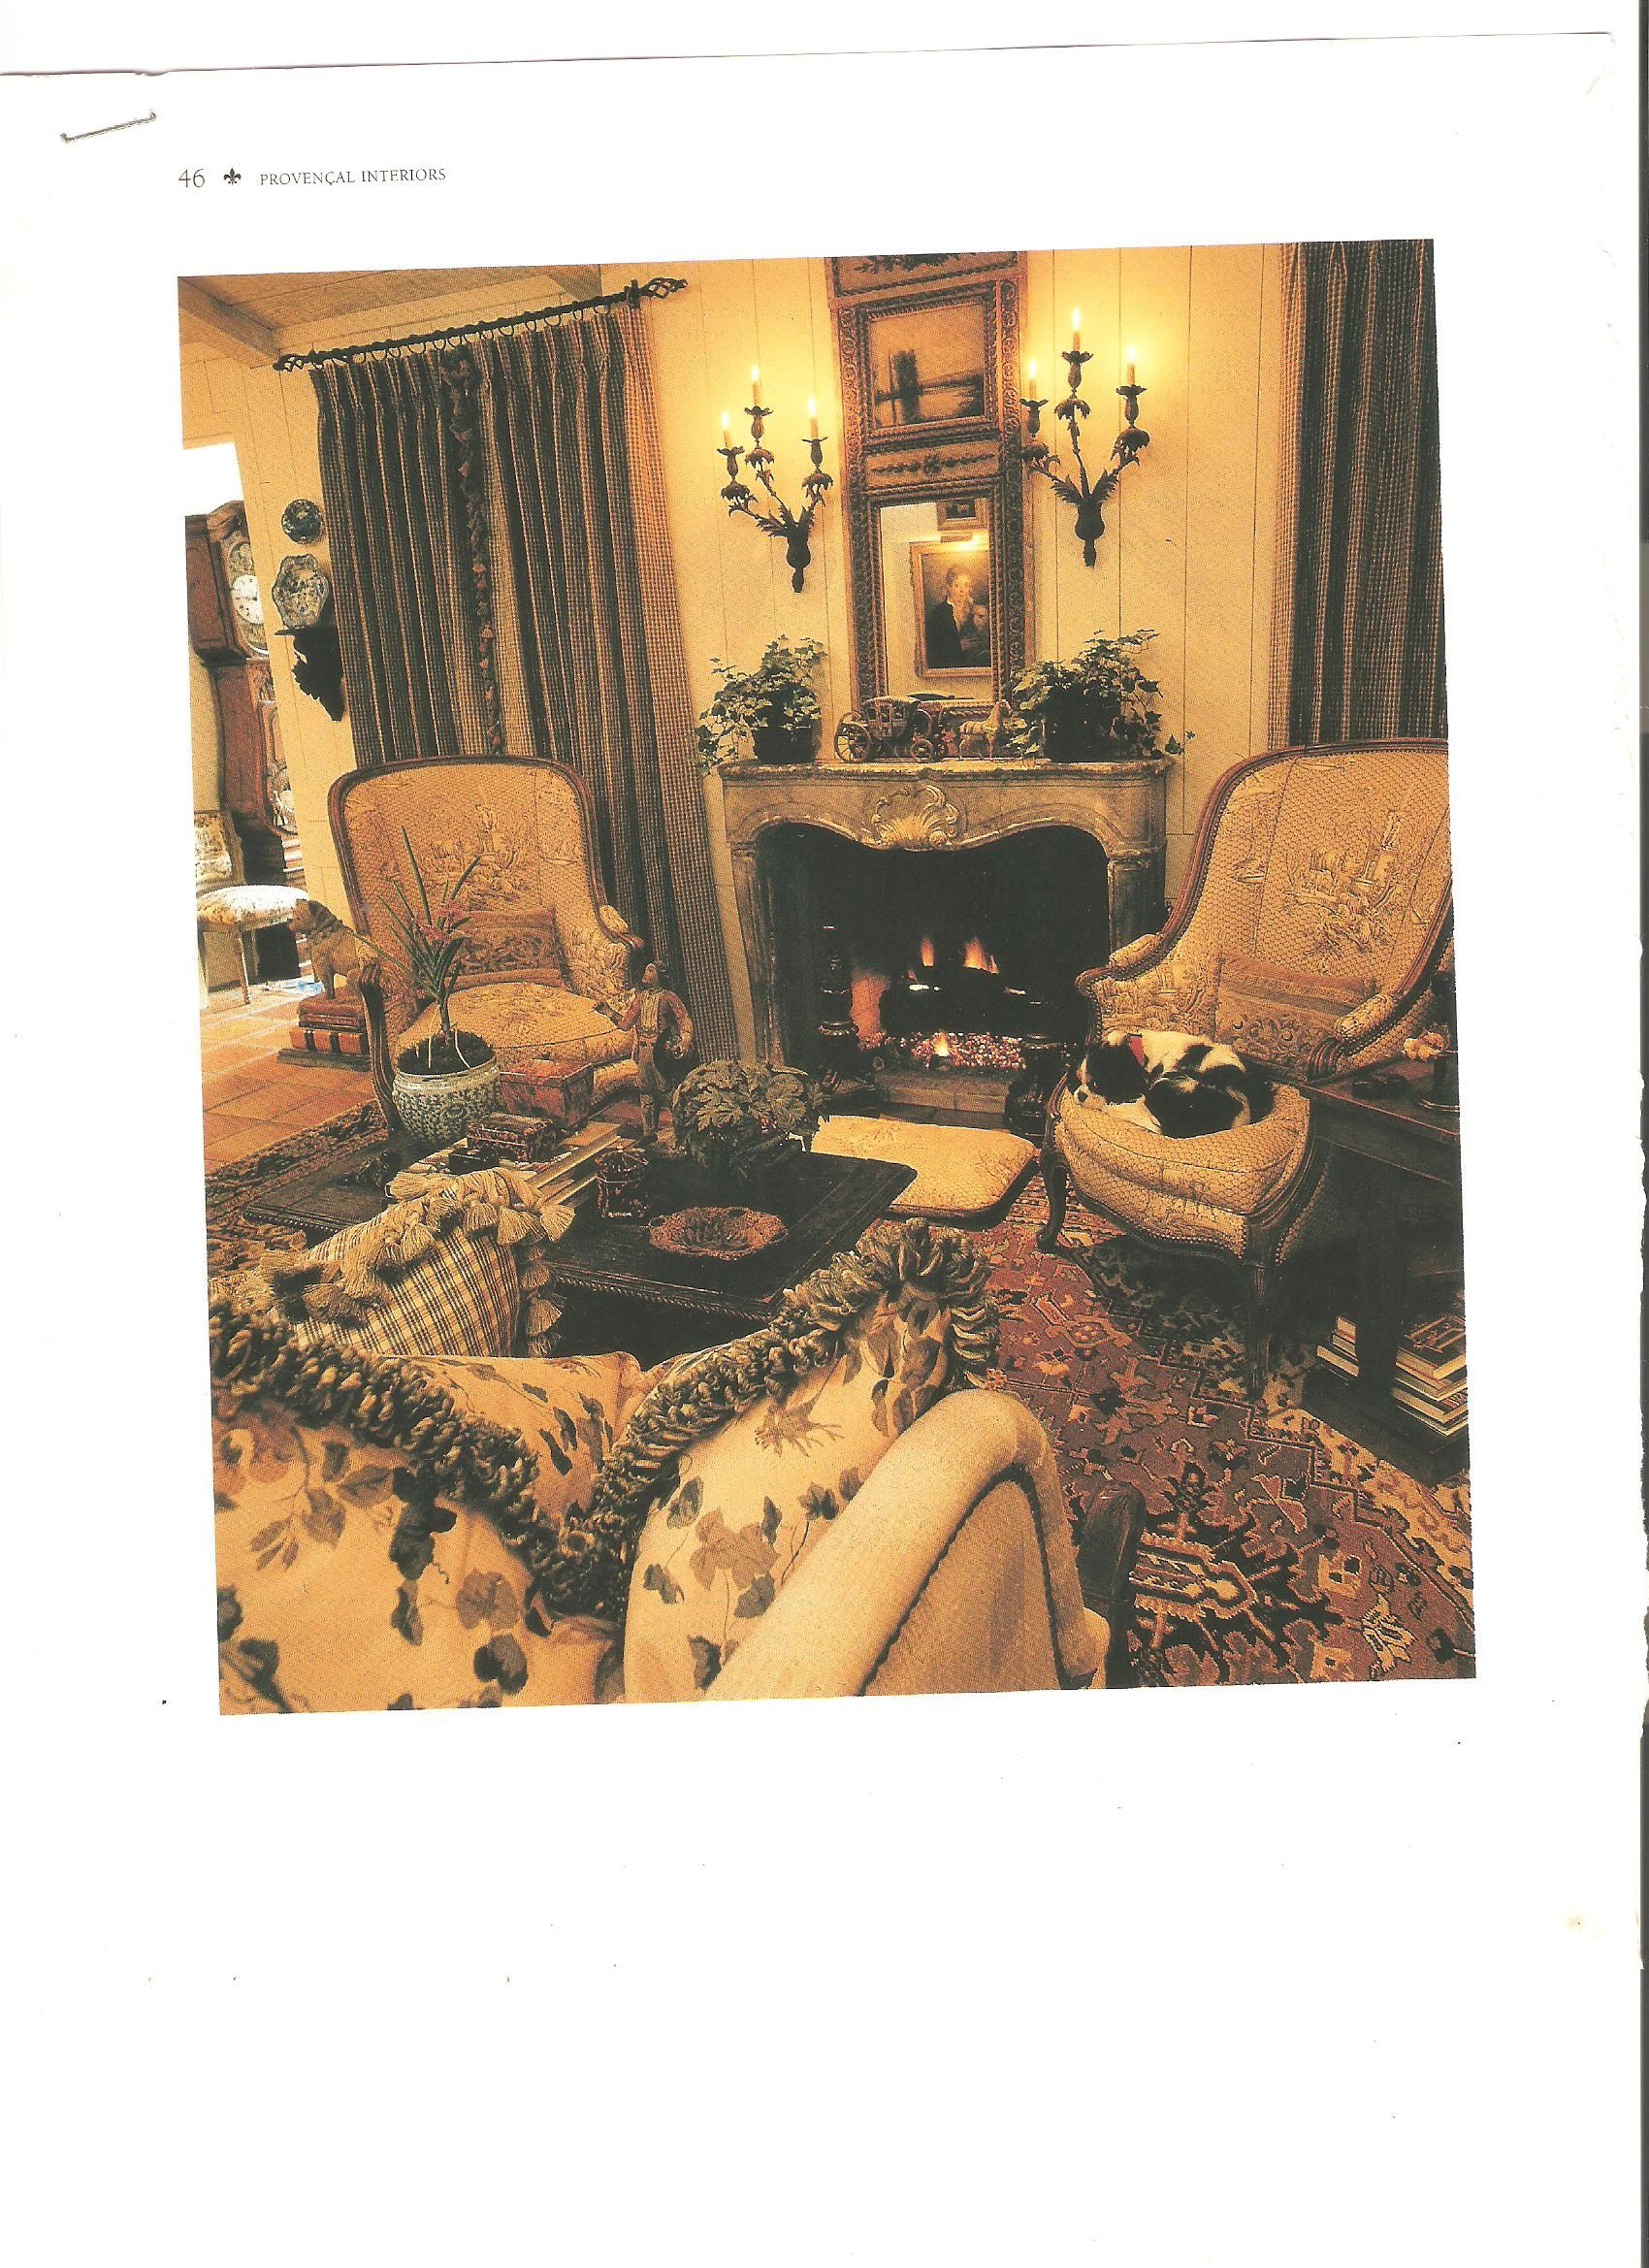 attractive living room of traditional french country home   Faudree from old Provencal Interiors magazine   DECOR ...